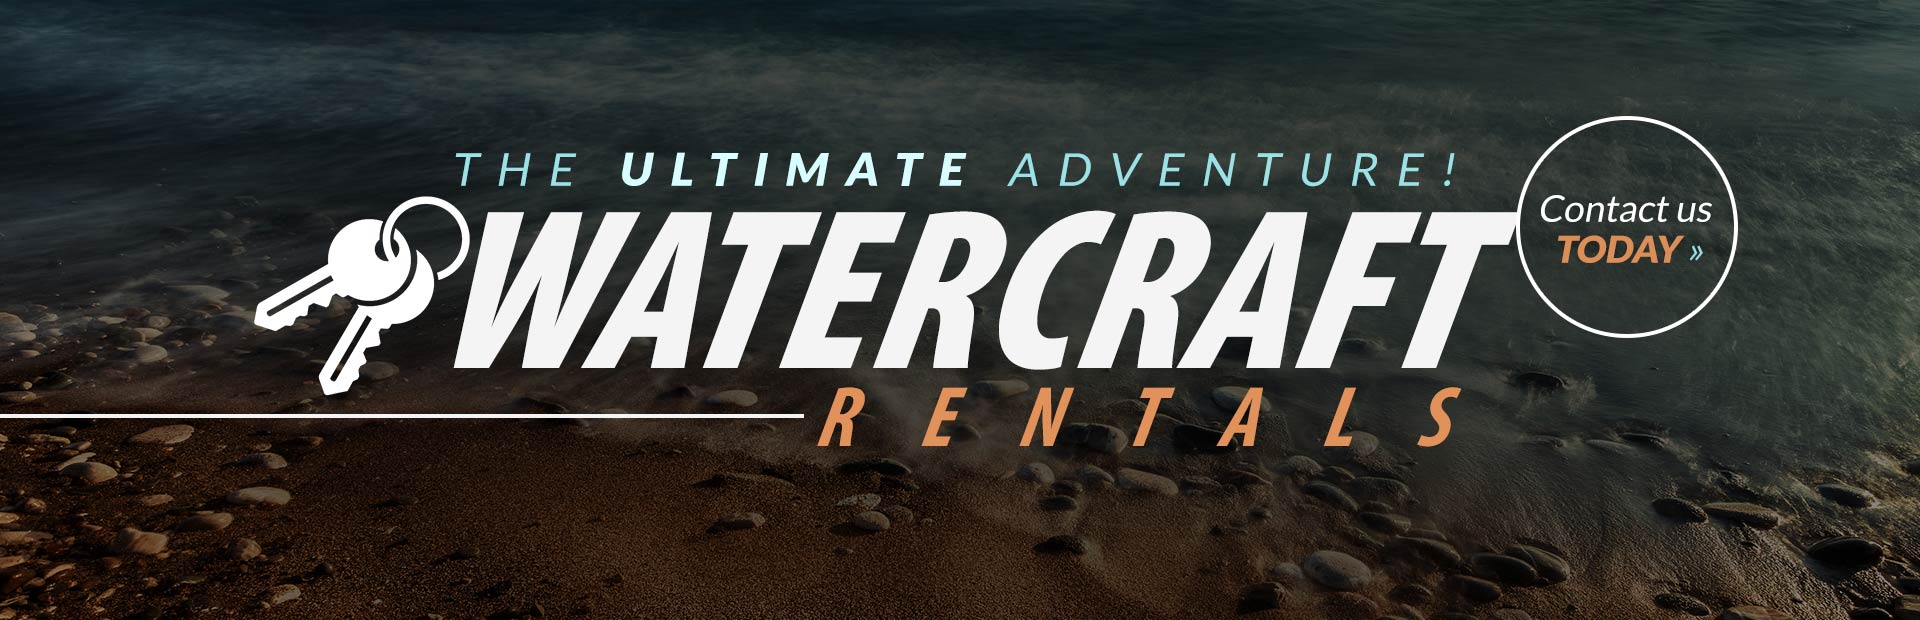 Watercraft rentals are available! Contact us for details.